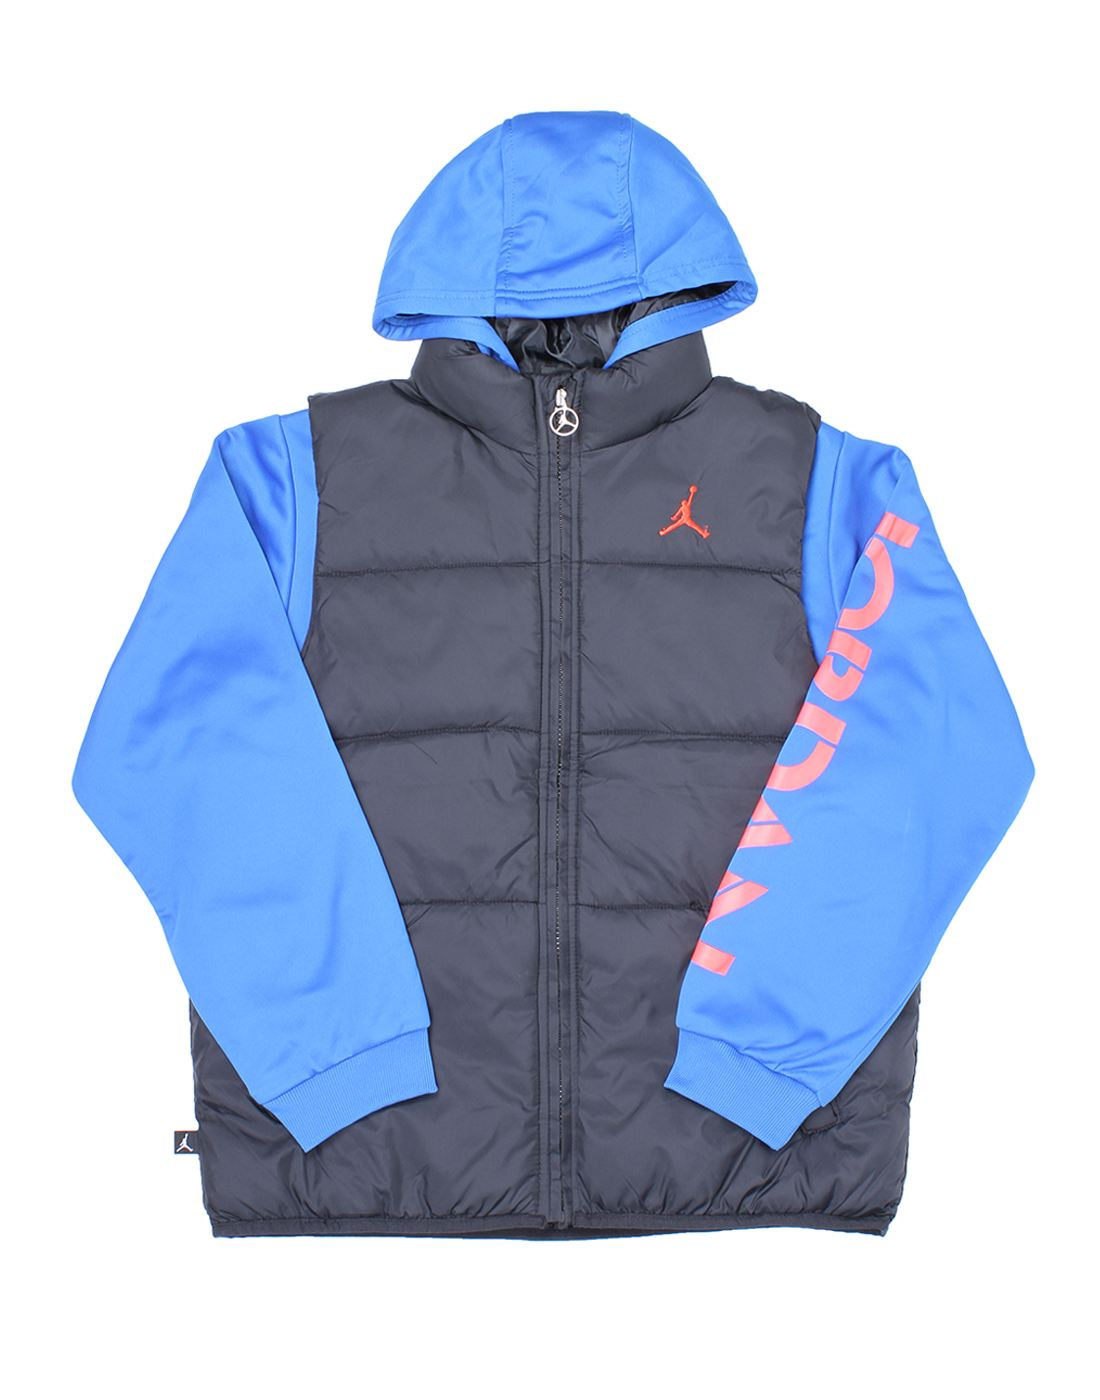 Jordan Boys Blue Solid Jacket